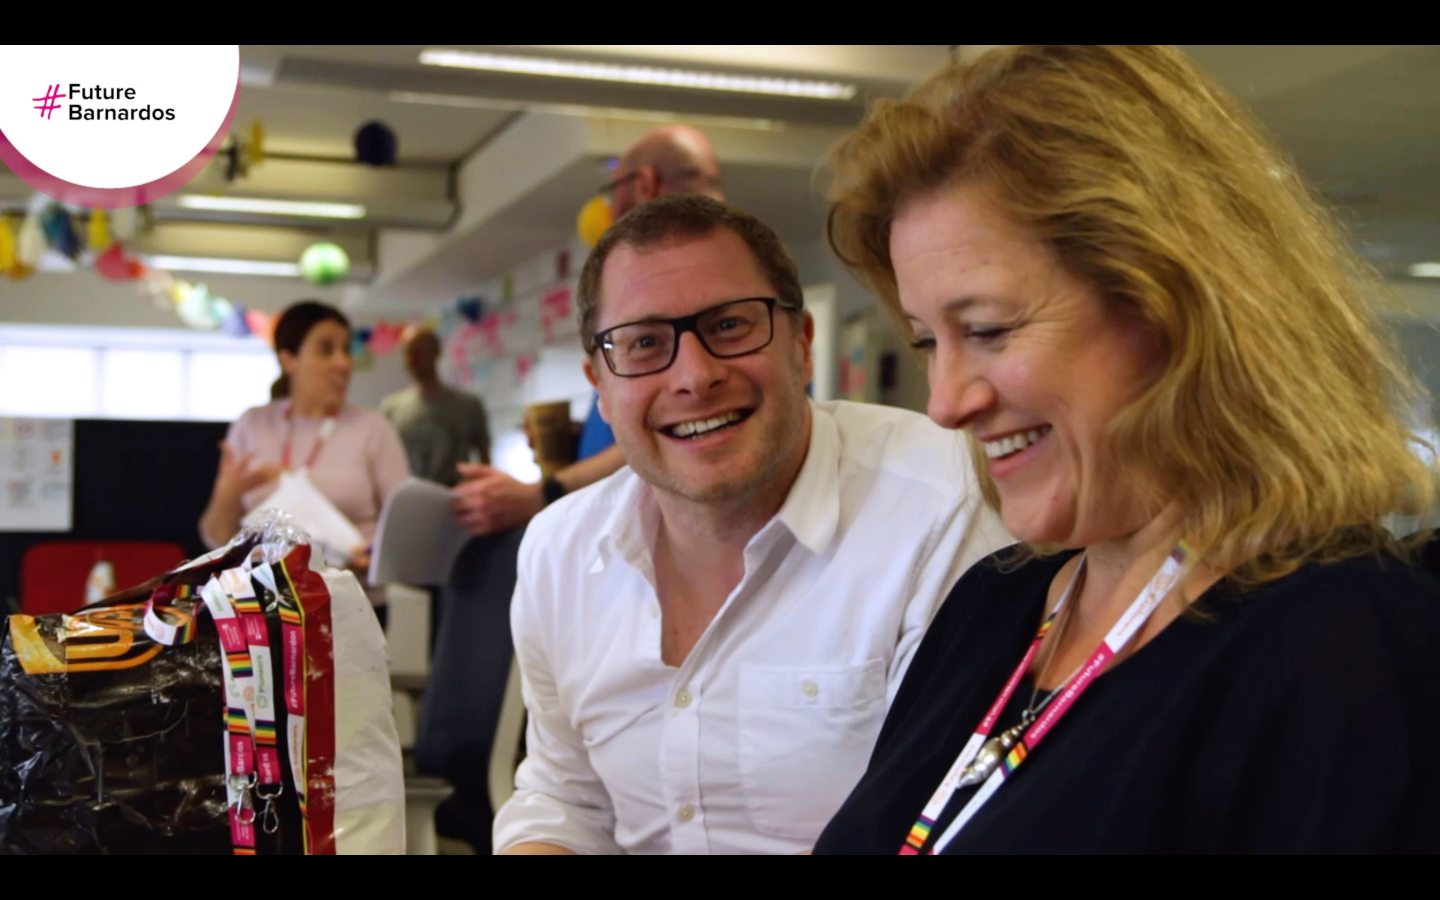 smiling colleagues - screenshot of futurebarnardos video